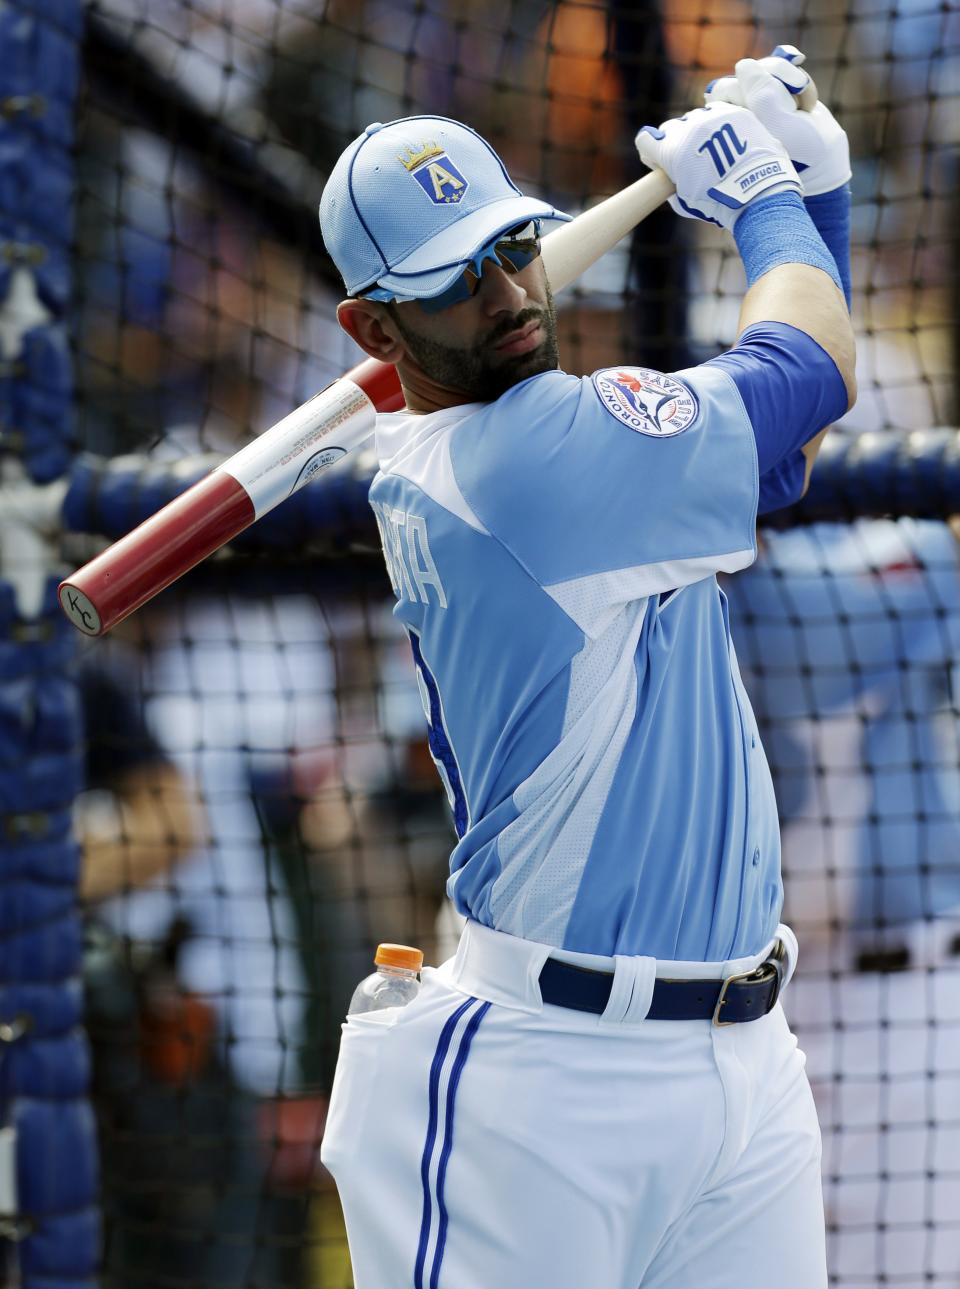 American League's Jose Bautista, of the Toronto Blue Jays, warms up during MLB All-Star baseball batting practice, Monday, July 9, 2012, in Kansas City, Mo. (AP Photo/Jeff Roberson)